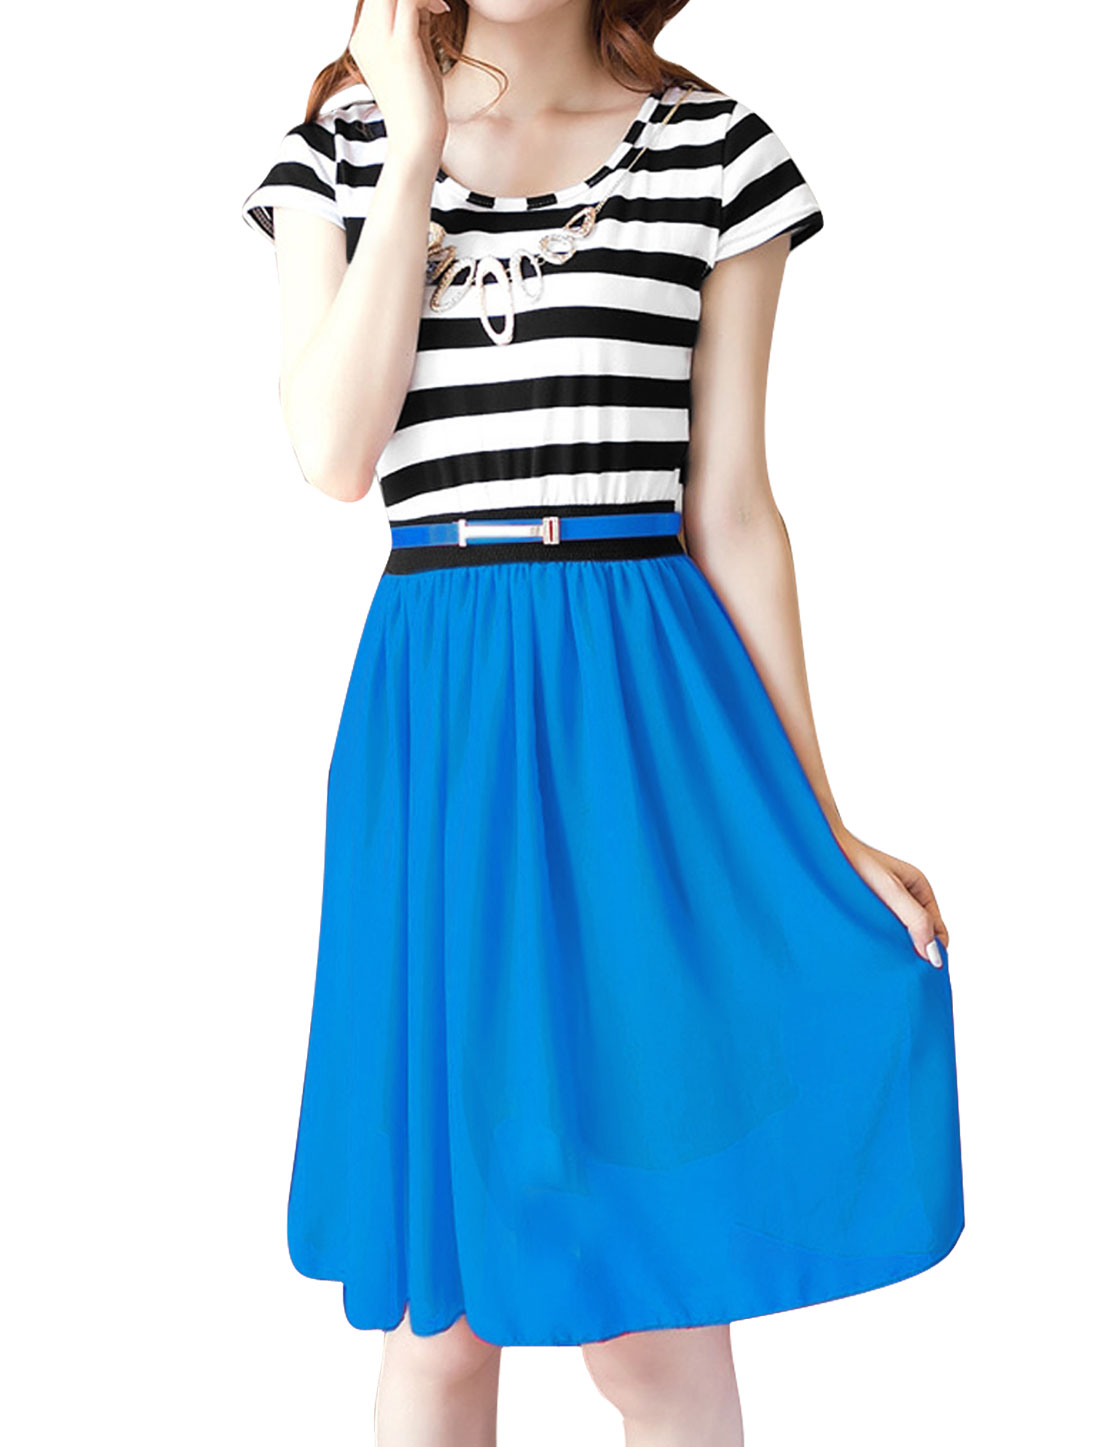 Blue XS Stretchy Waist Design Two Tone Cap Sleeve Women Dress